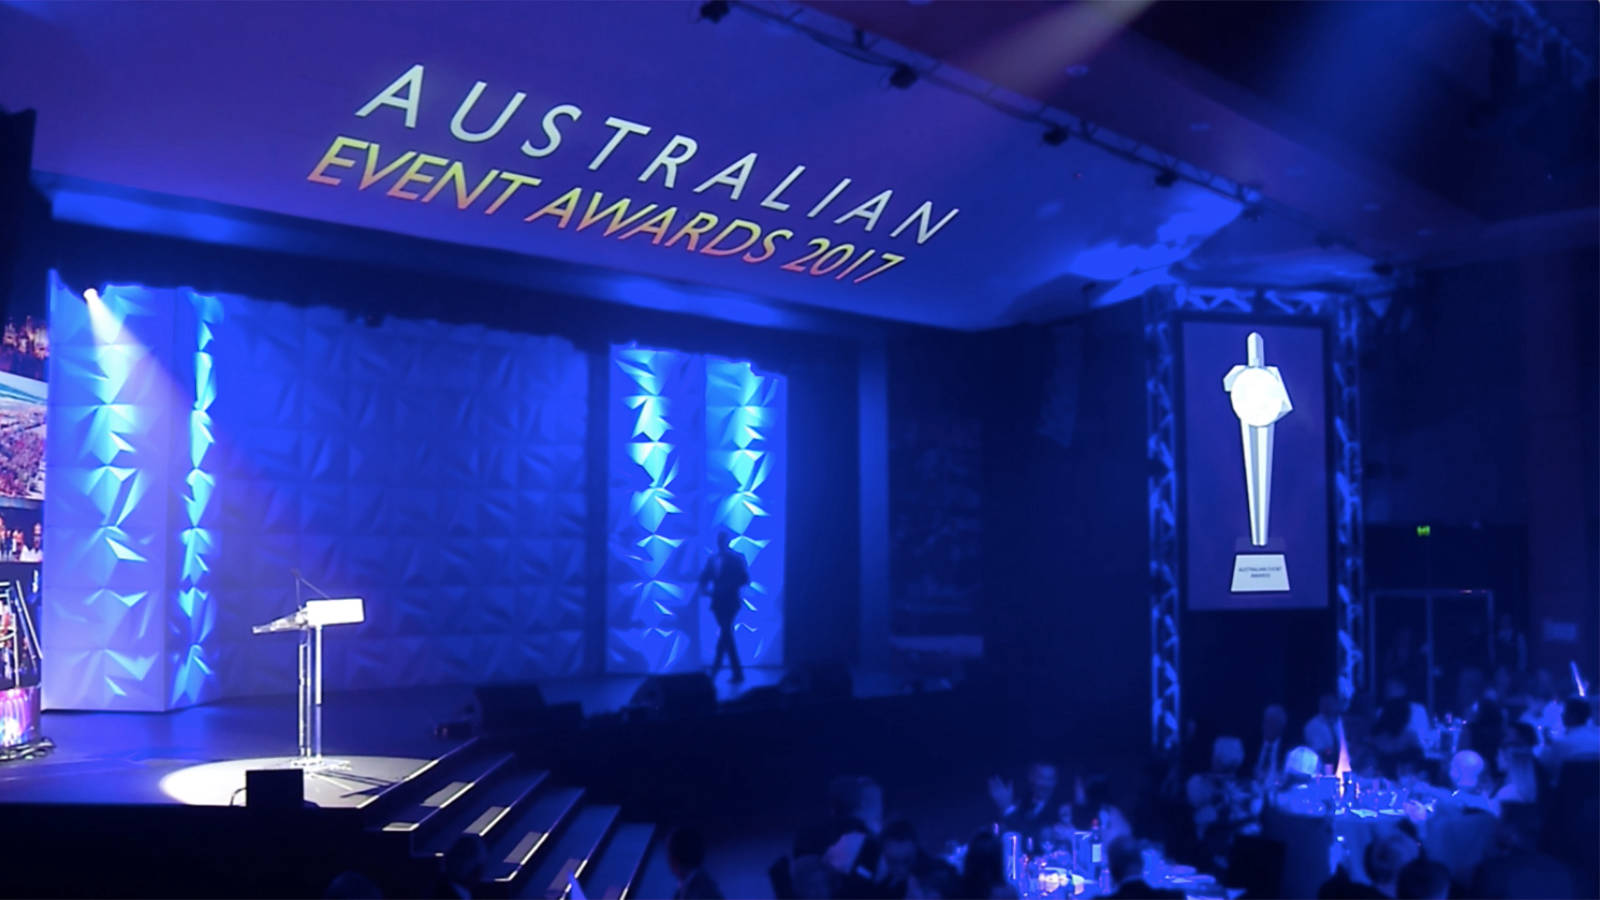 Australian Event Awards 2017 - Live Streaming